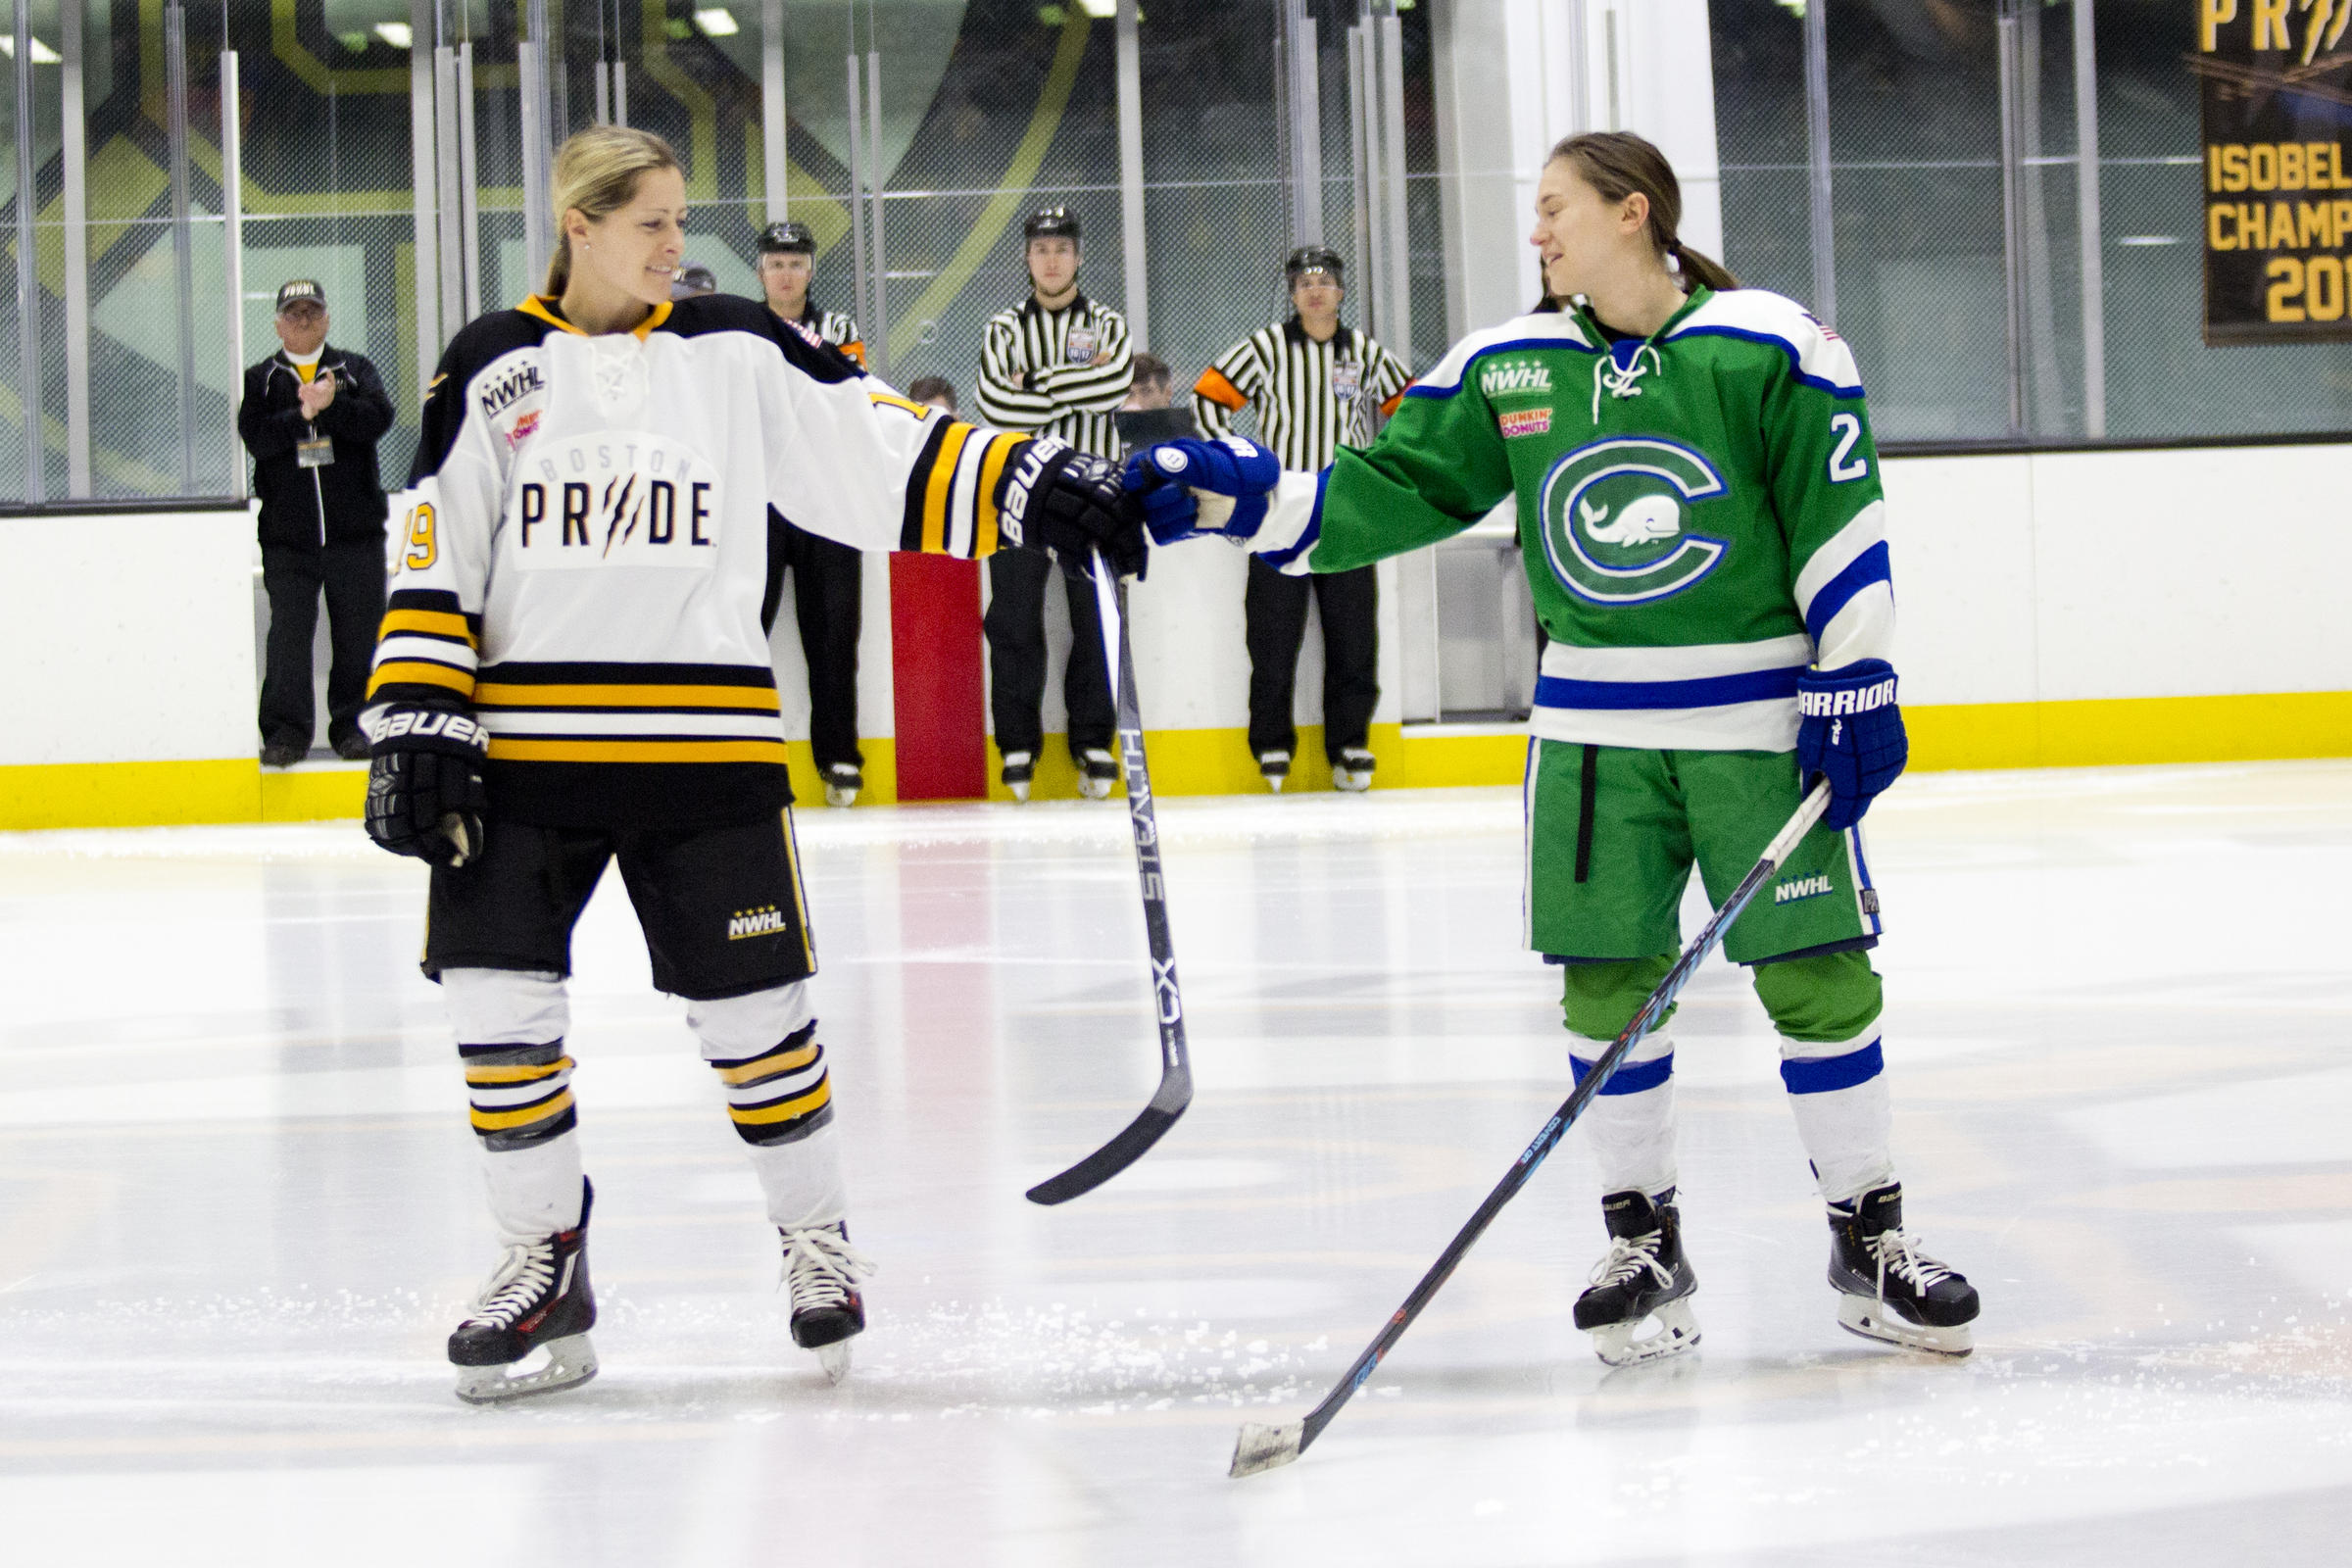 Team USA players from opposite sides came together before Thursday s  National Women s Hockey League semi-final d00ae4926